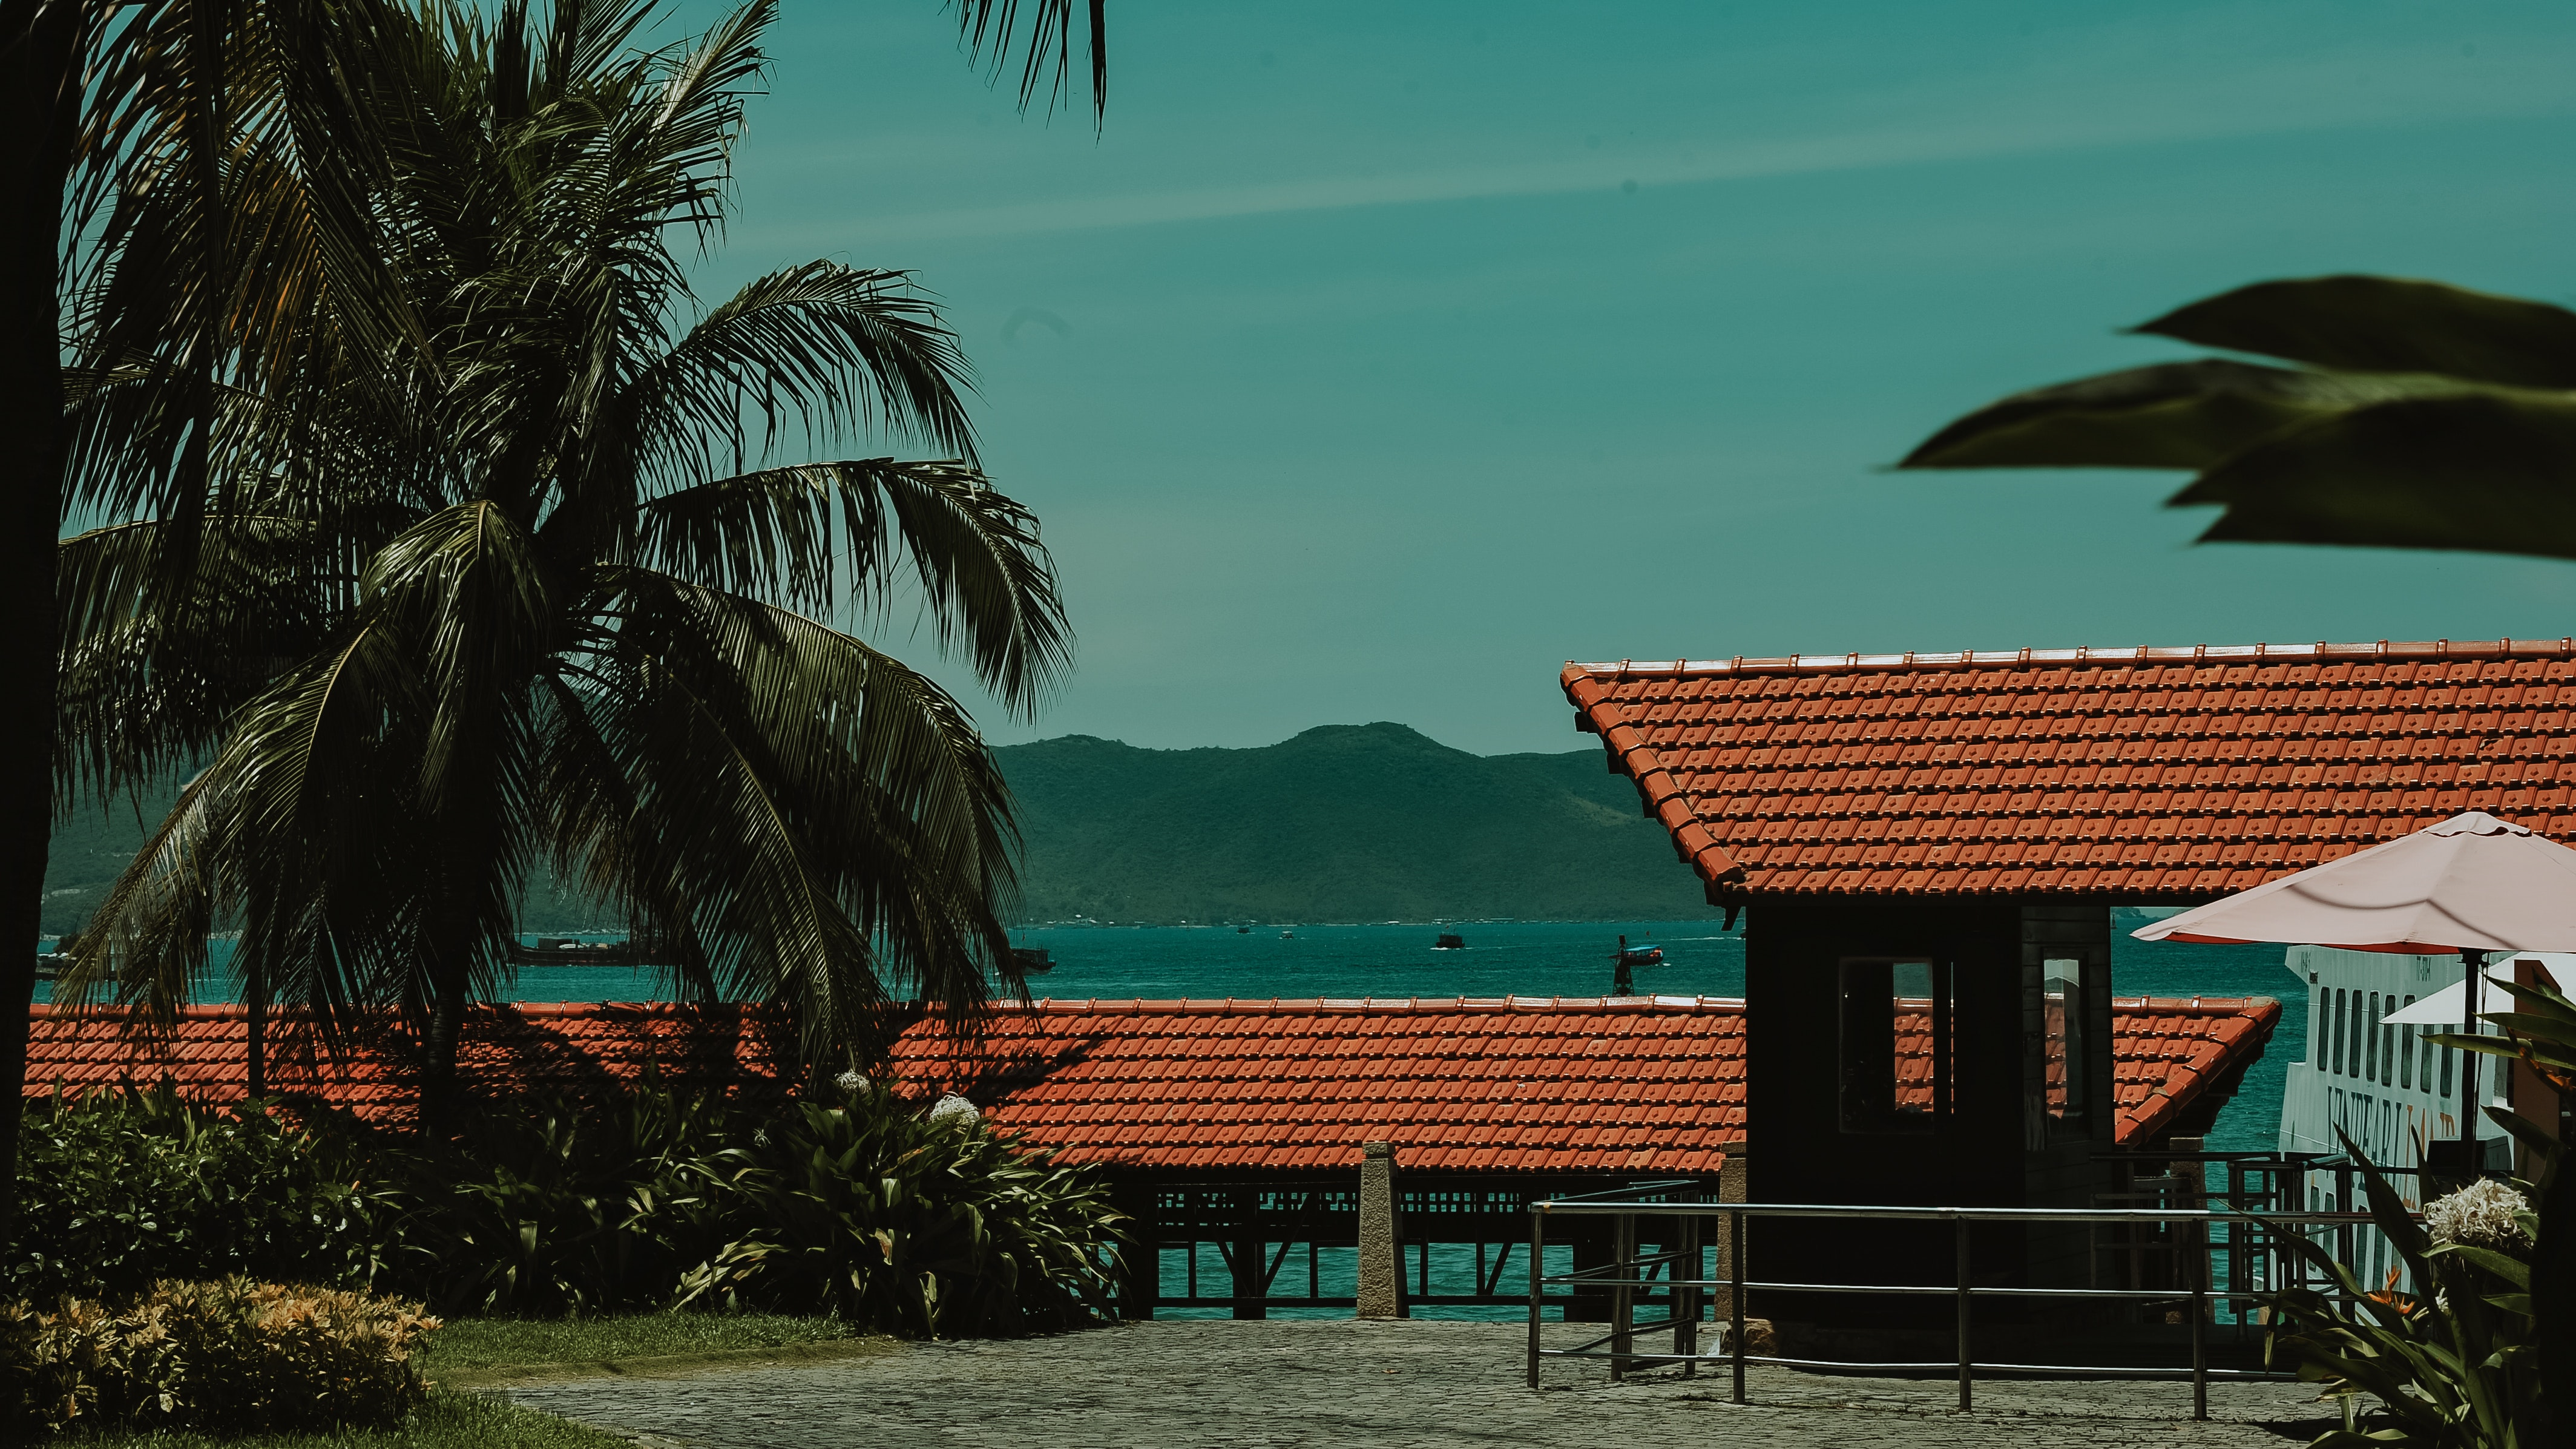 Green Coconut Tree Near Shed, Beach, Trees, Structure, Sky, HQ Photo